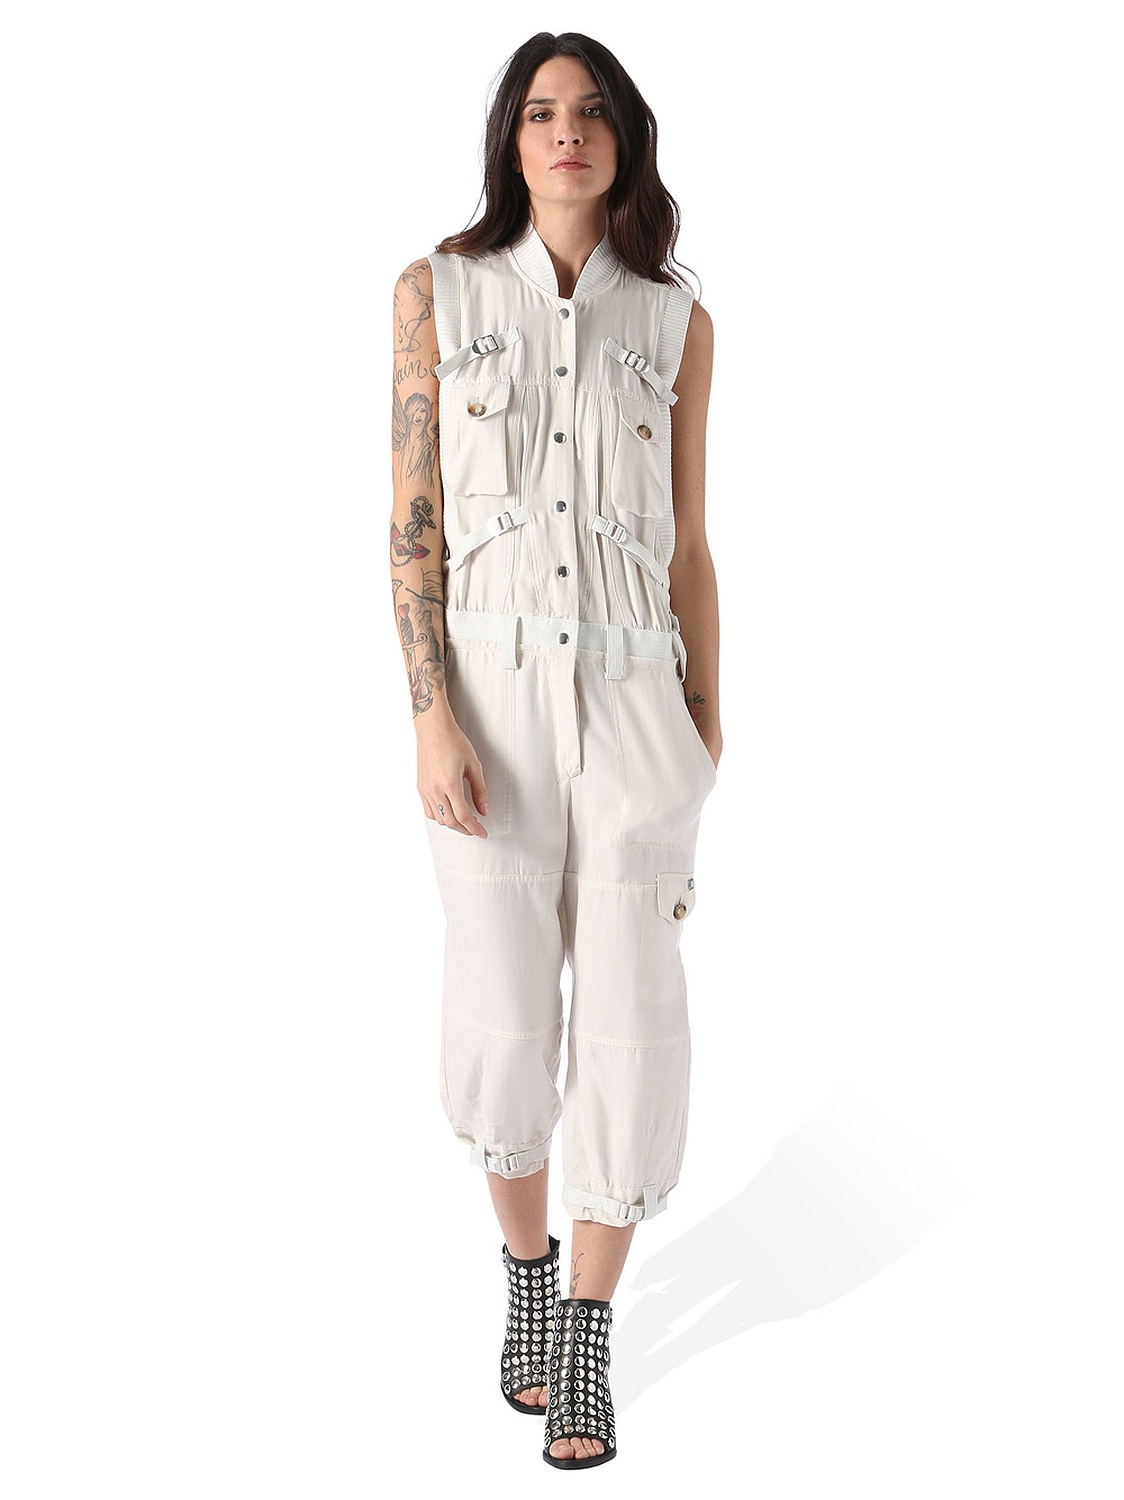 diesel j attie tuta damen jeans overall jumpsuit creme ebay. Black Bedroom Furniture Sets. Home Design Ideas